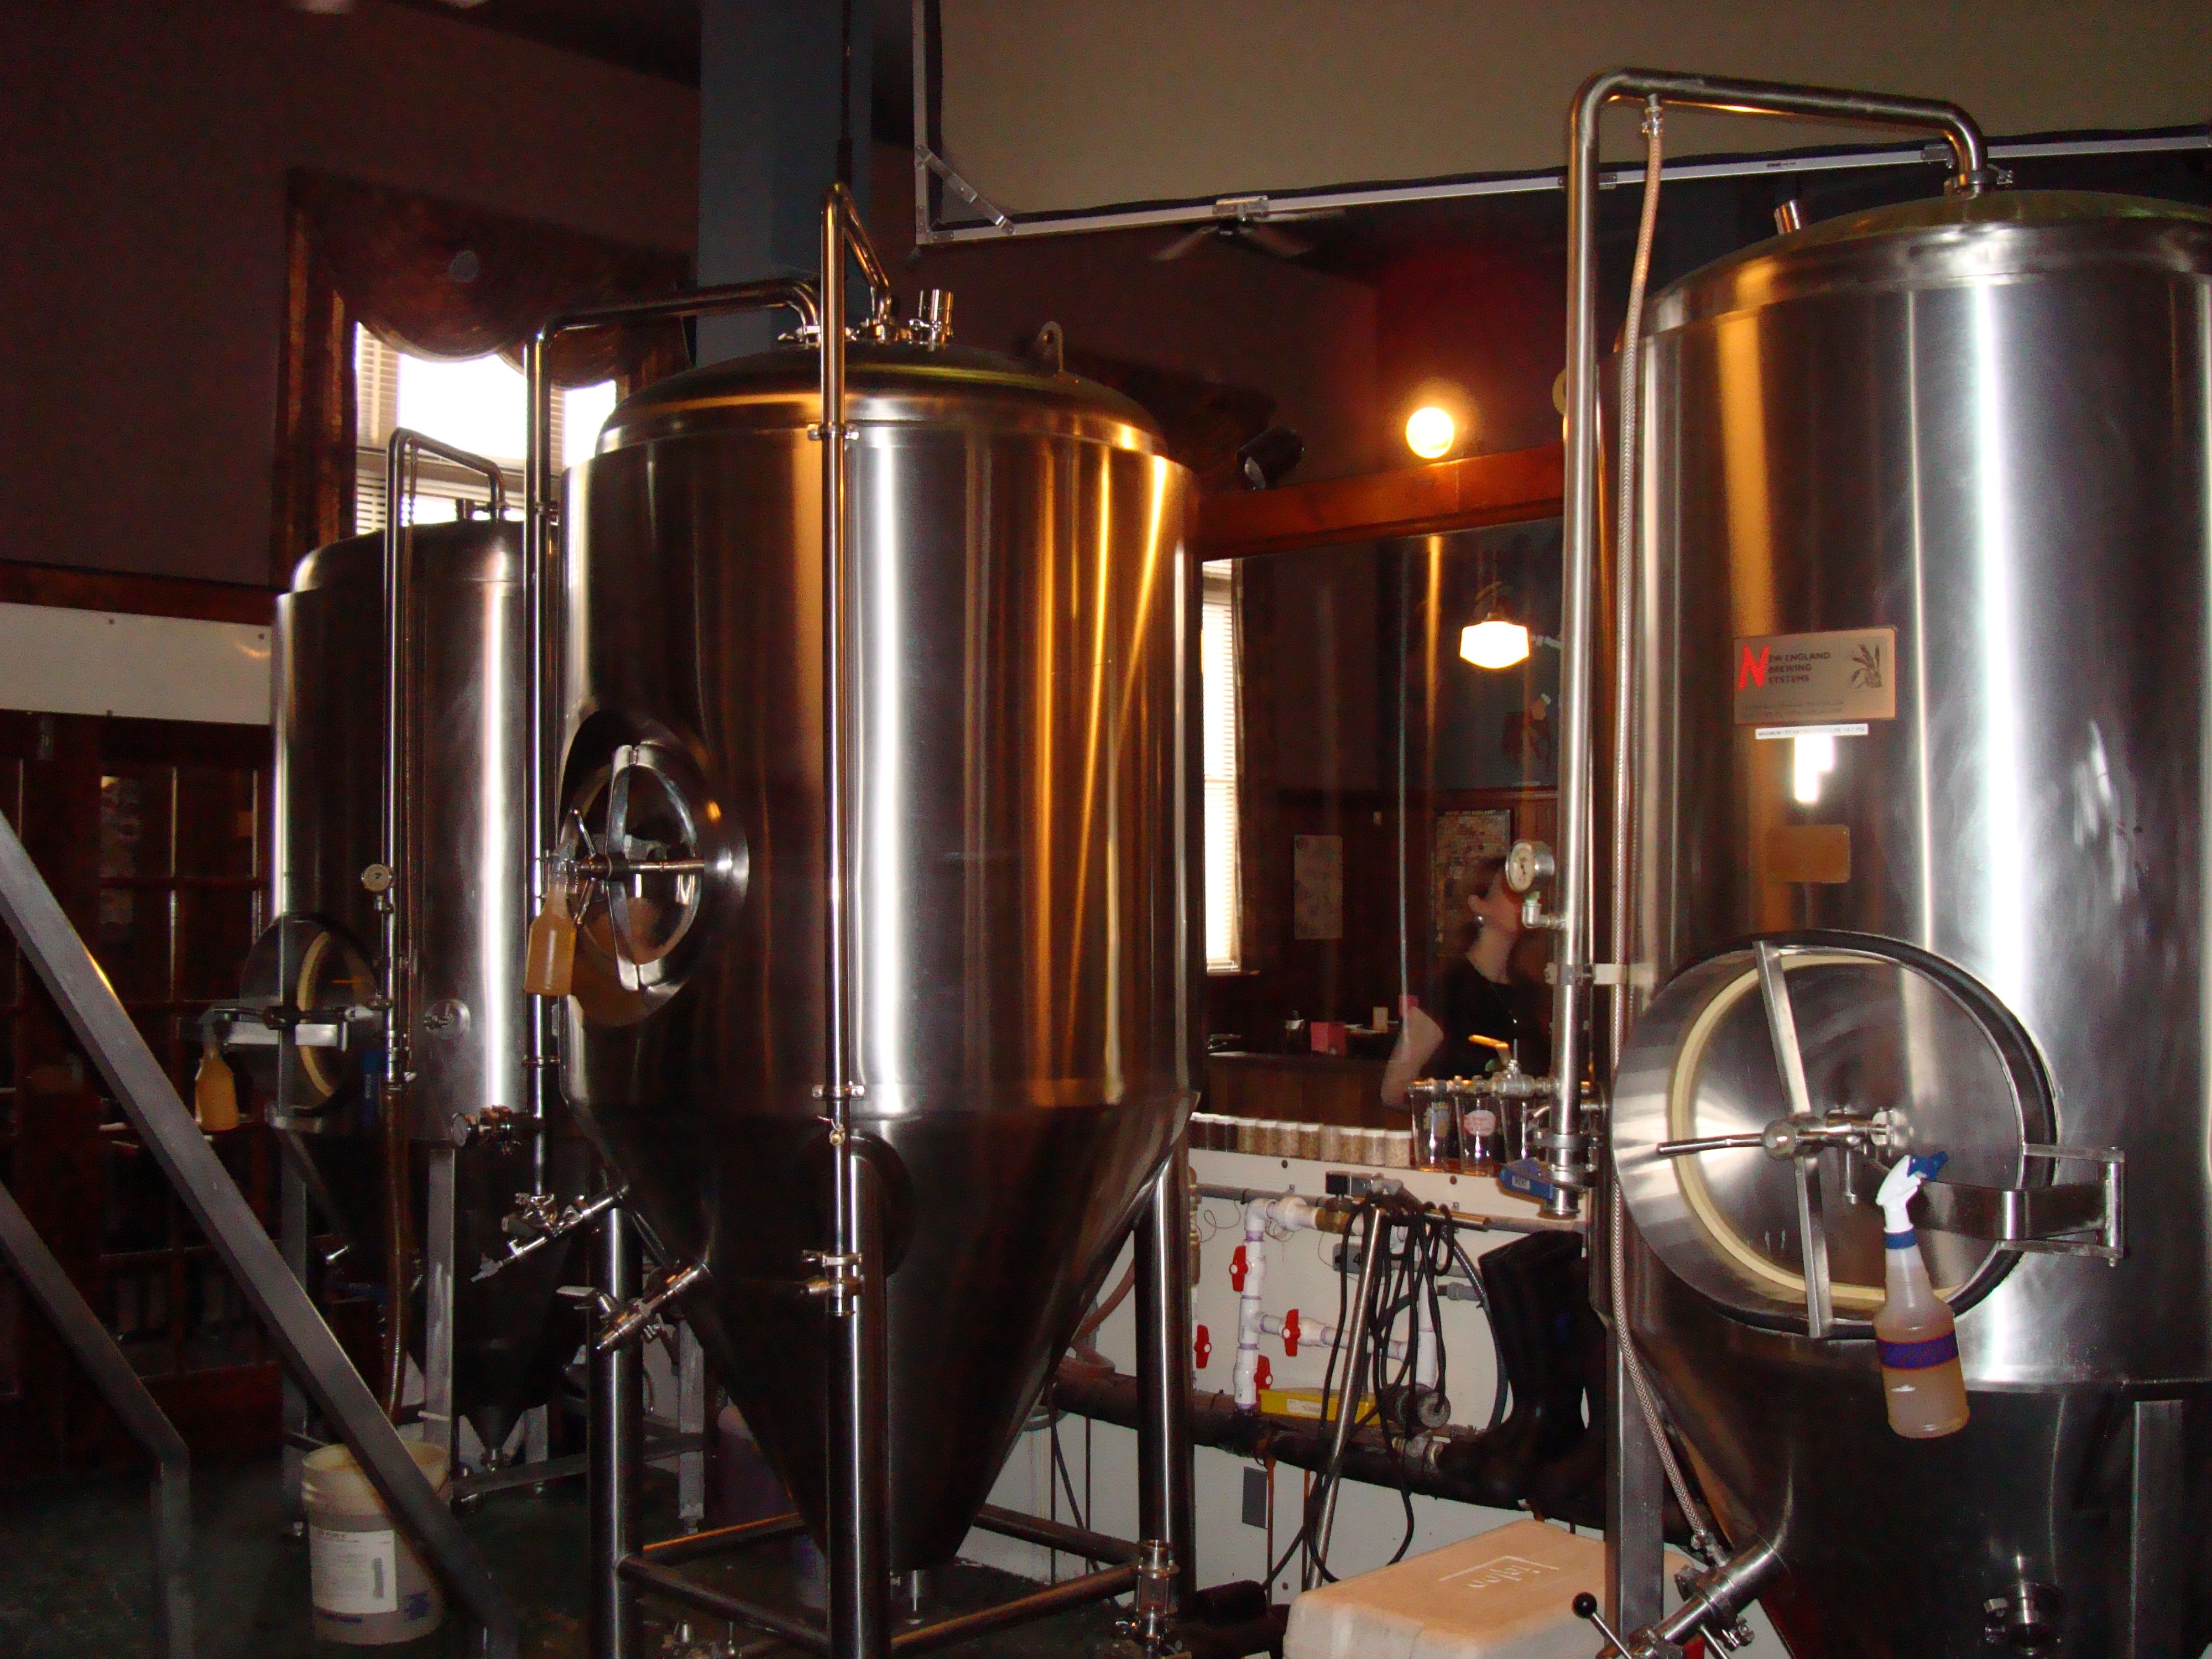 Willimantic Brewing Company 967 Main Street Willimantic